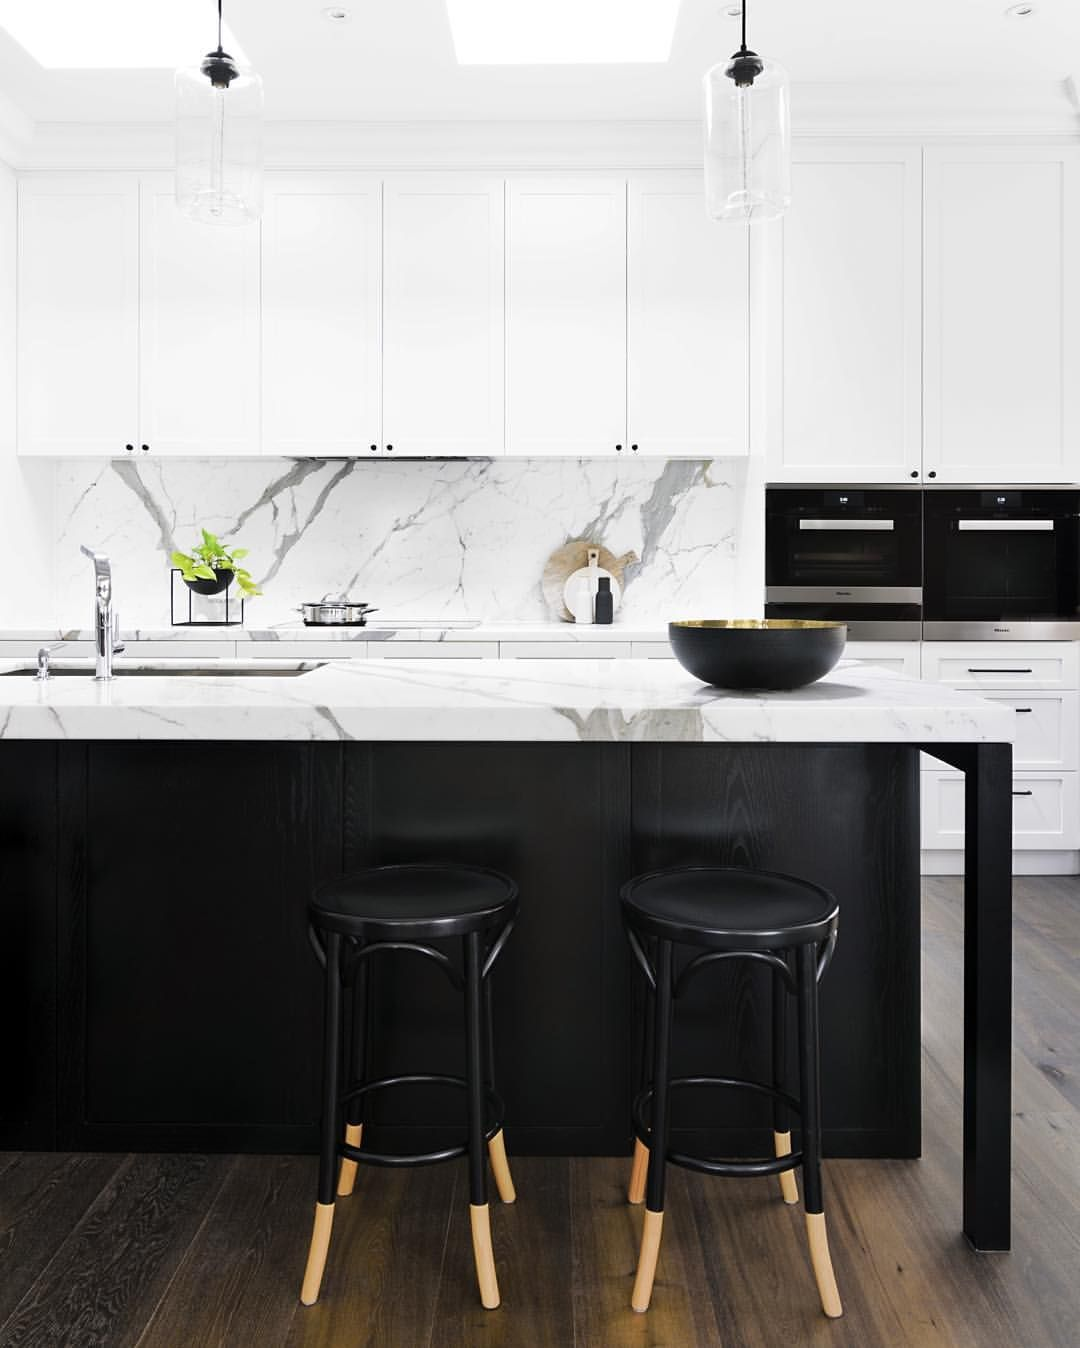 black and white kitchen cupboards. Calacatta Oro marble kitchen island bench at PRK Residence  one of our recently completed residential projects Pin by Mackenzie Young on Home Decor Pinterest Kitchens